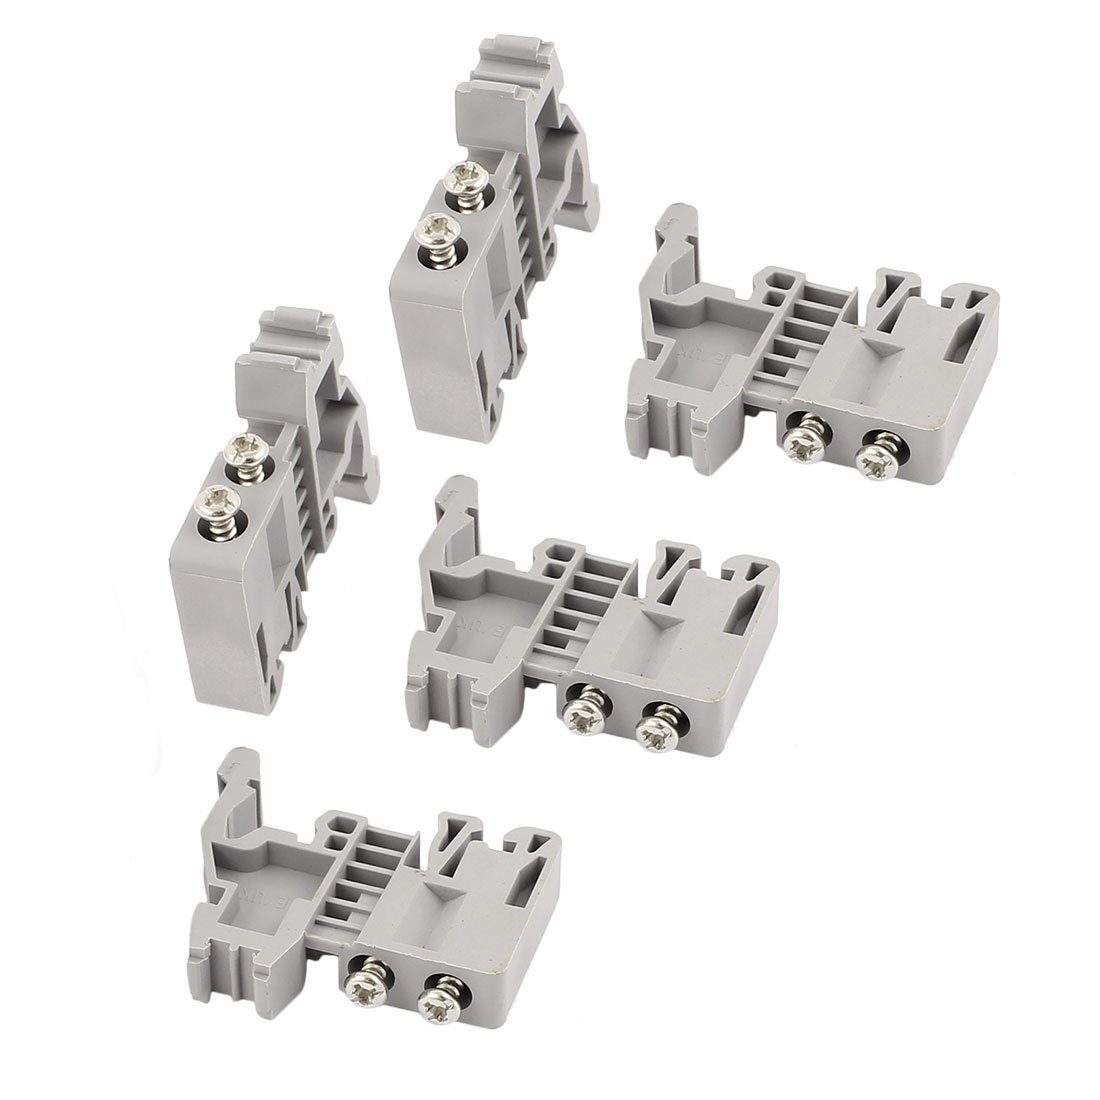 uxcell 5 Pcs E-UK 35mm DIN Rail End Screw Clamp Terminal Fixed Block Gray